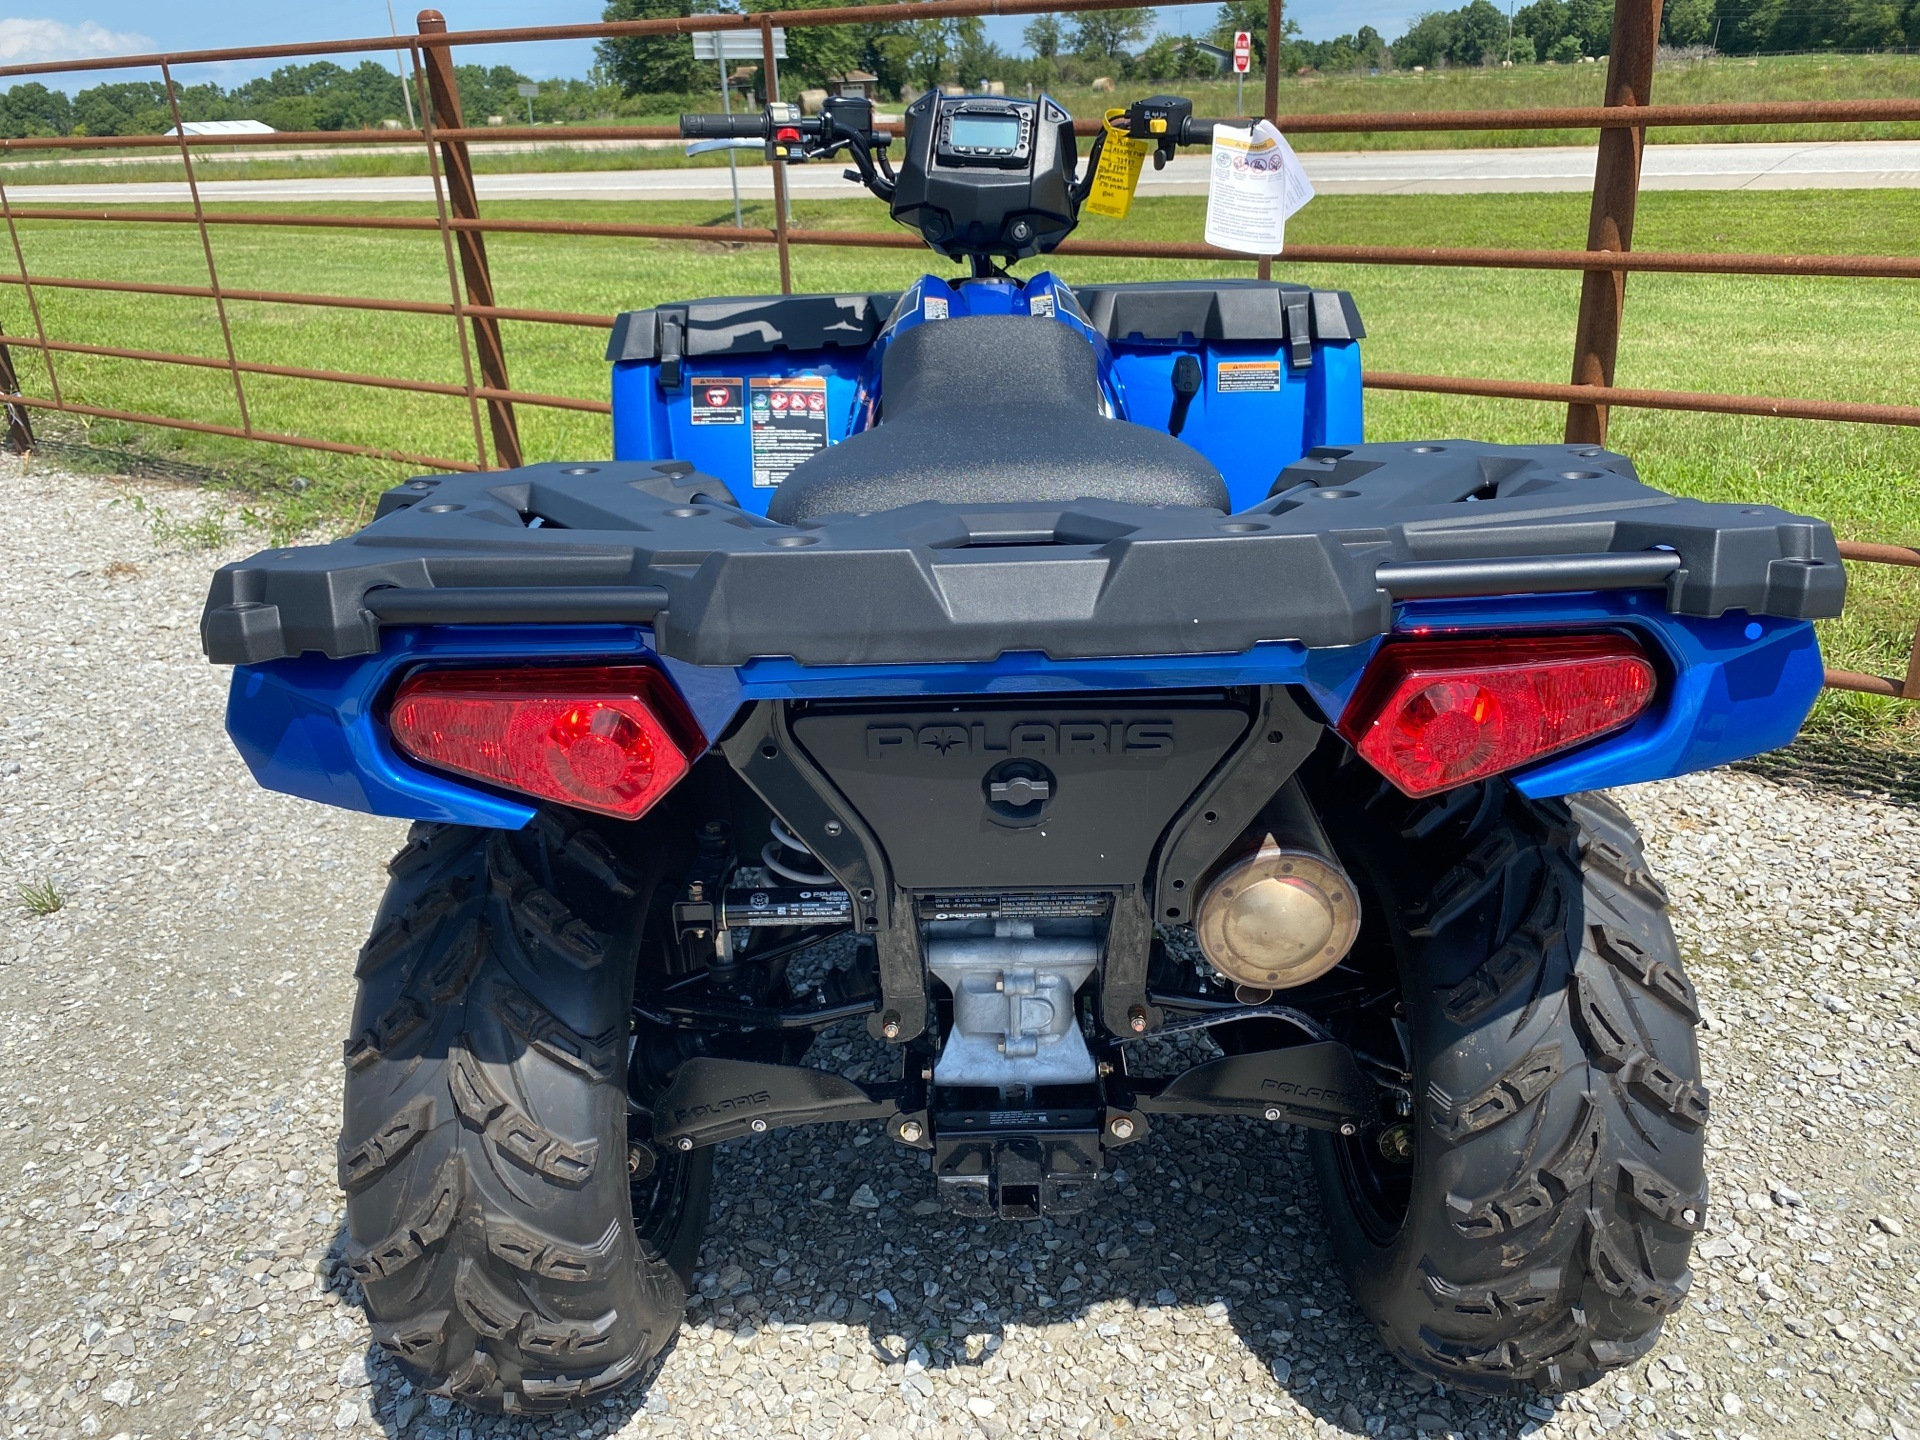 2020 Polaris Sportsman 570 Premium in Bolivar, Missouri - Photo 3